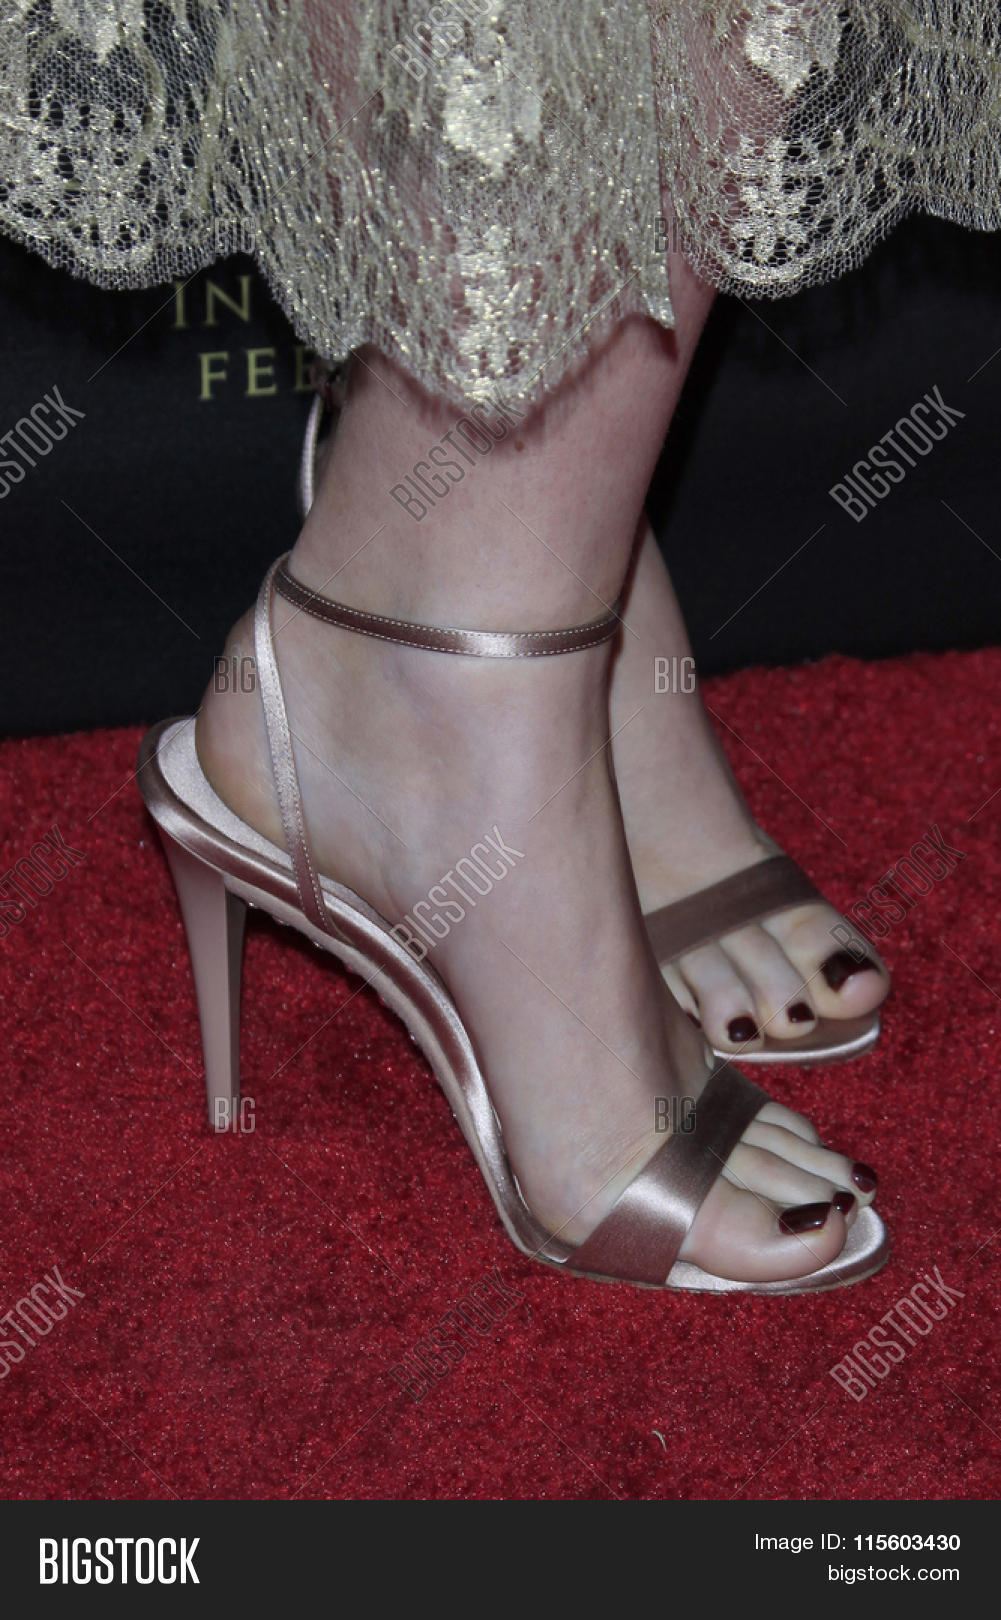 Feet Millie Brady naked (37 photos), Ass, Paparazzi, Selfie, cleavage 2019